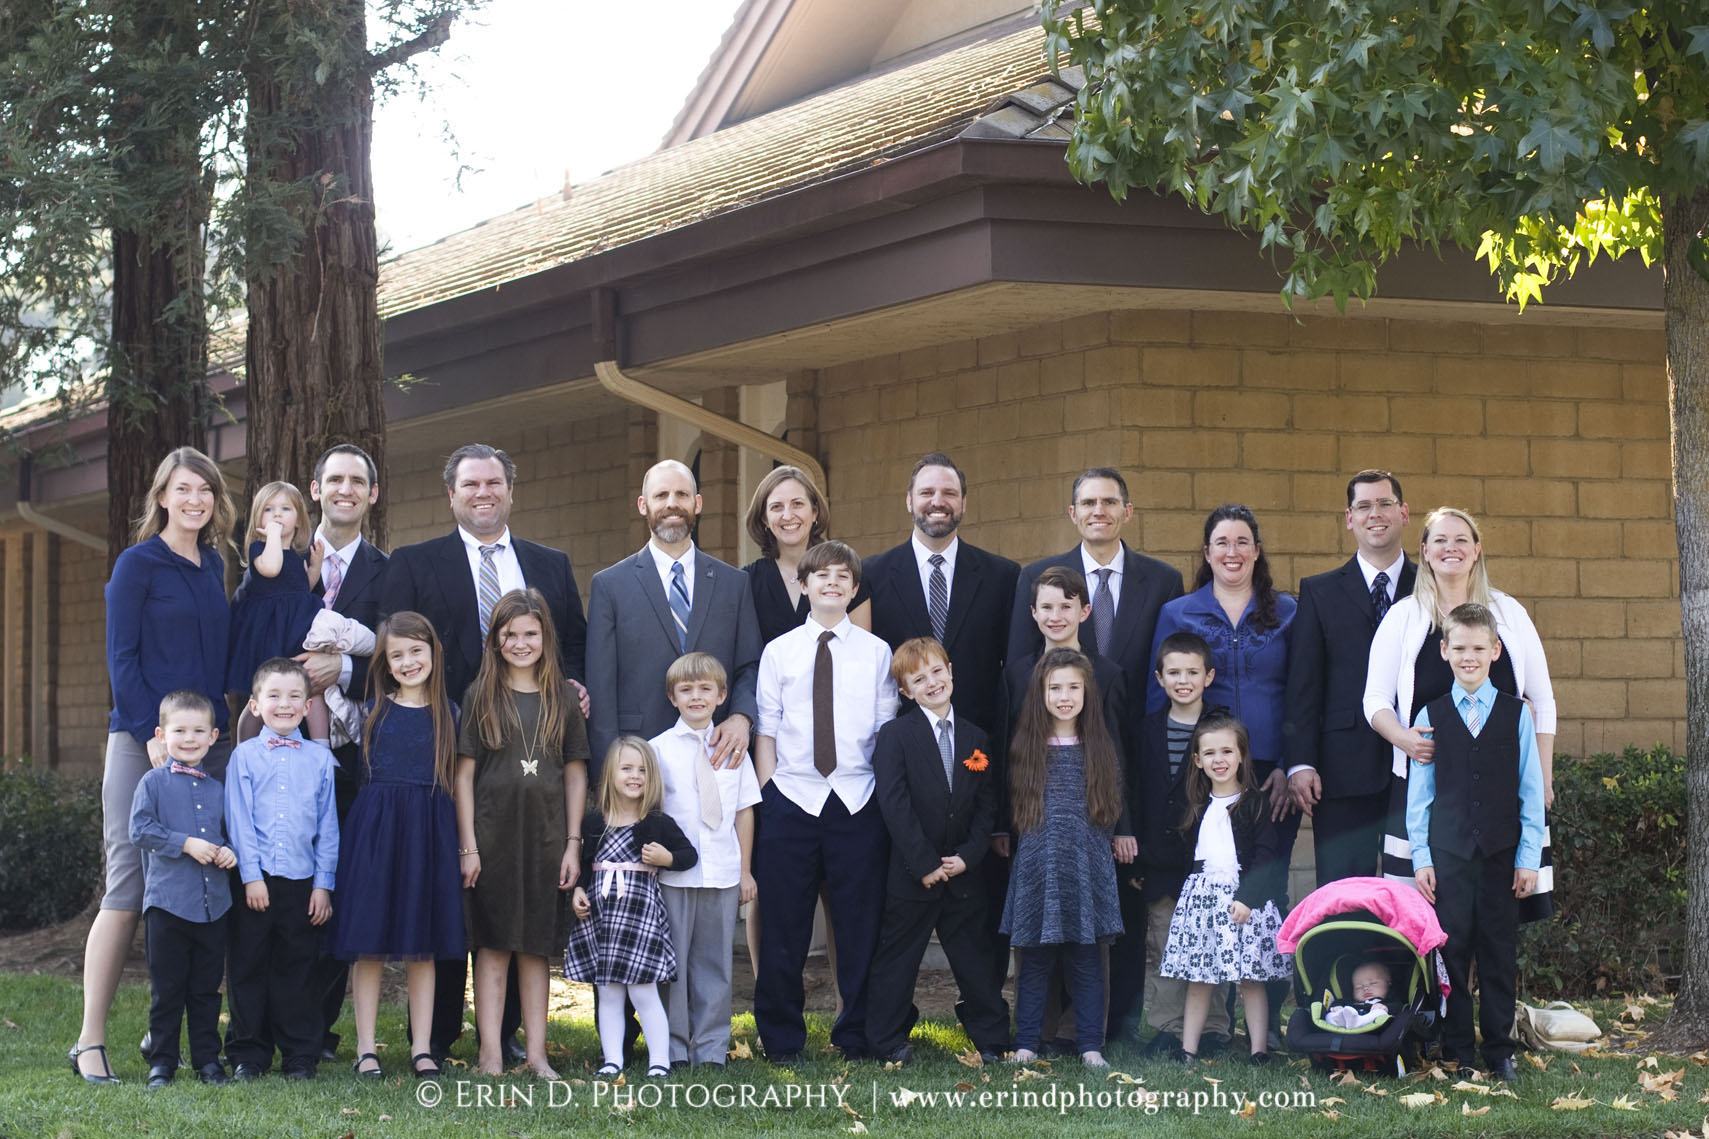 Extended Family Portraits | © Erin D. Photography | erindphotography.com